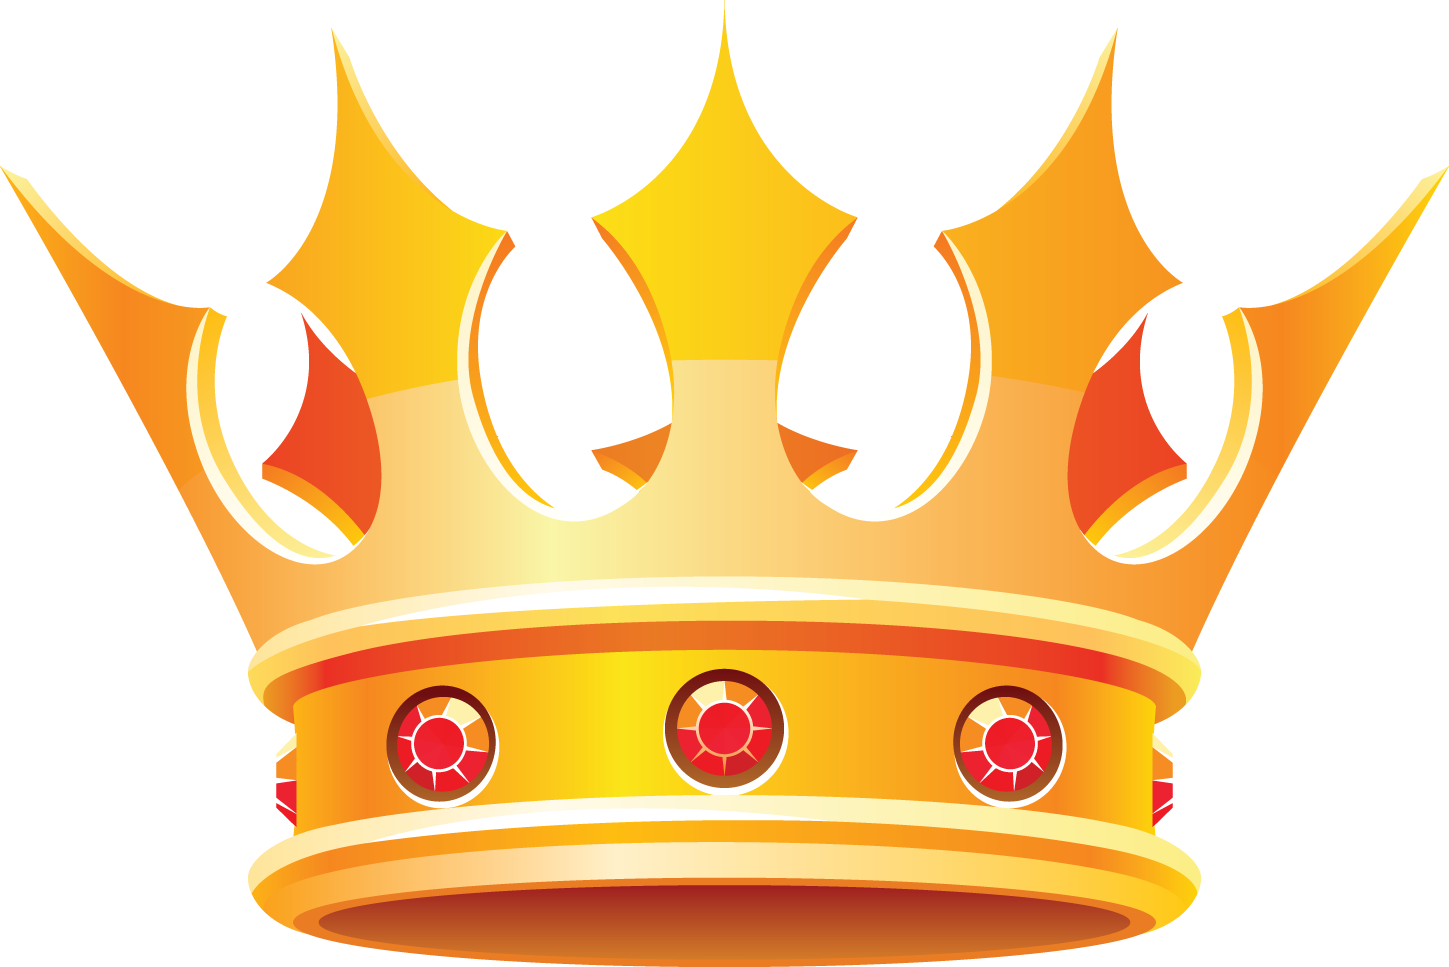 Homecoming crown clipart clip royalty free Queen Crown Clipart at GetDrawings.com | Free for personal use Queen ... clip royalty free